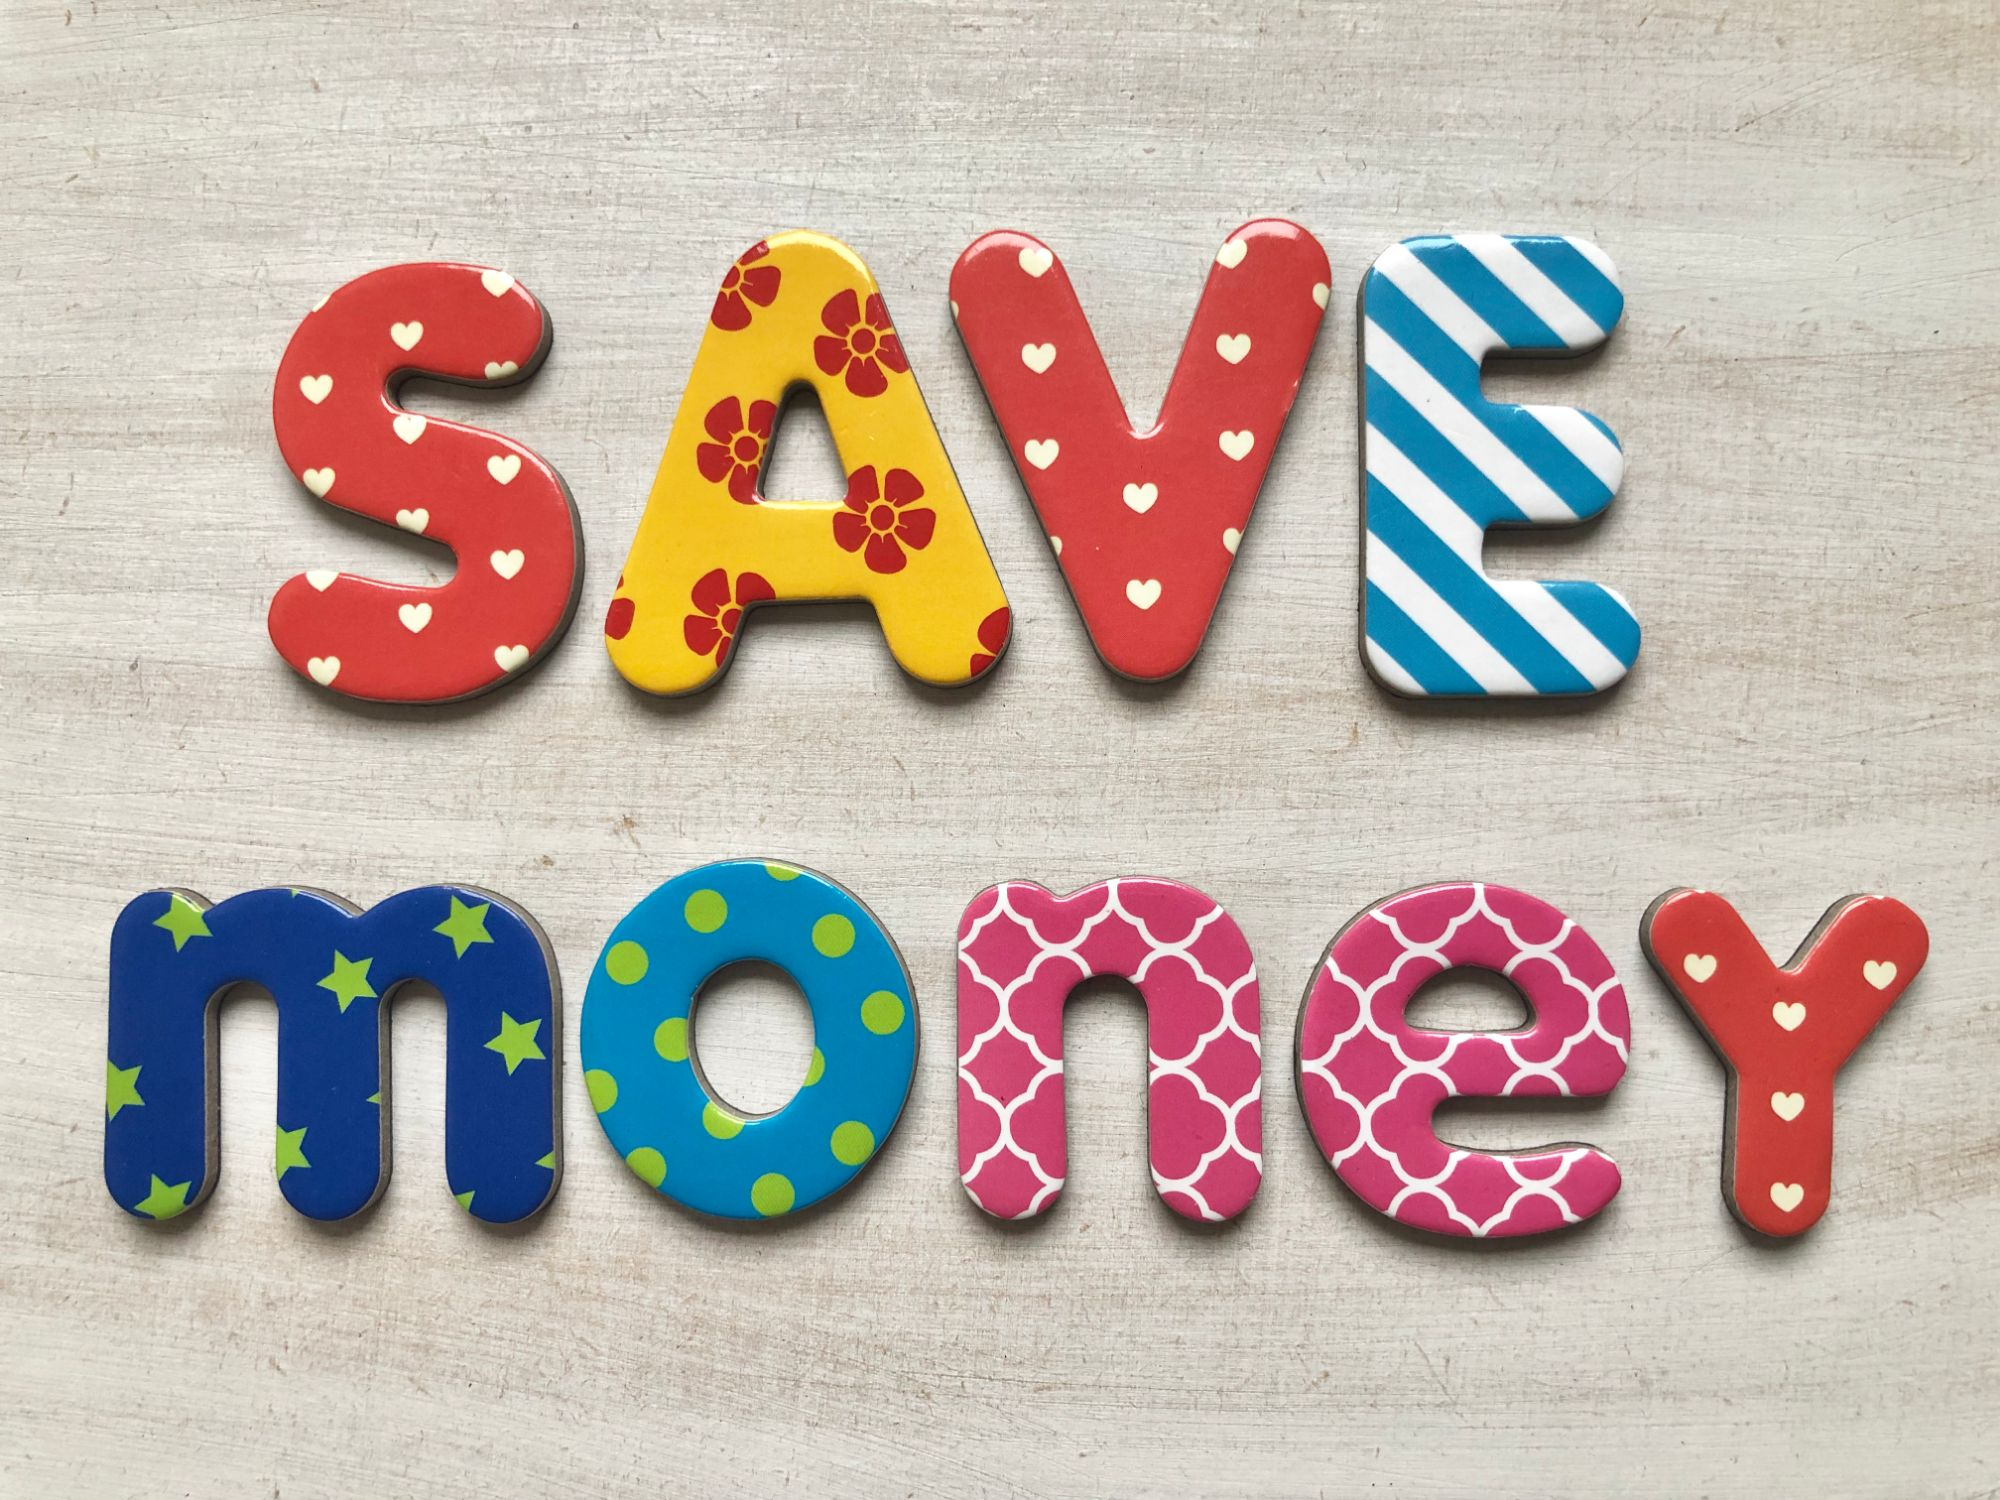 Free stock images for money bloggers blog -alphabet lettering letters white background colourful says 'save money'